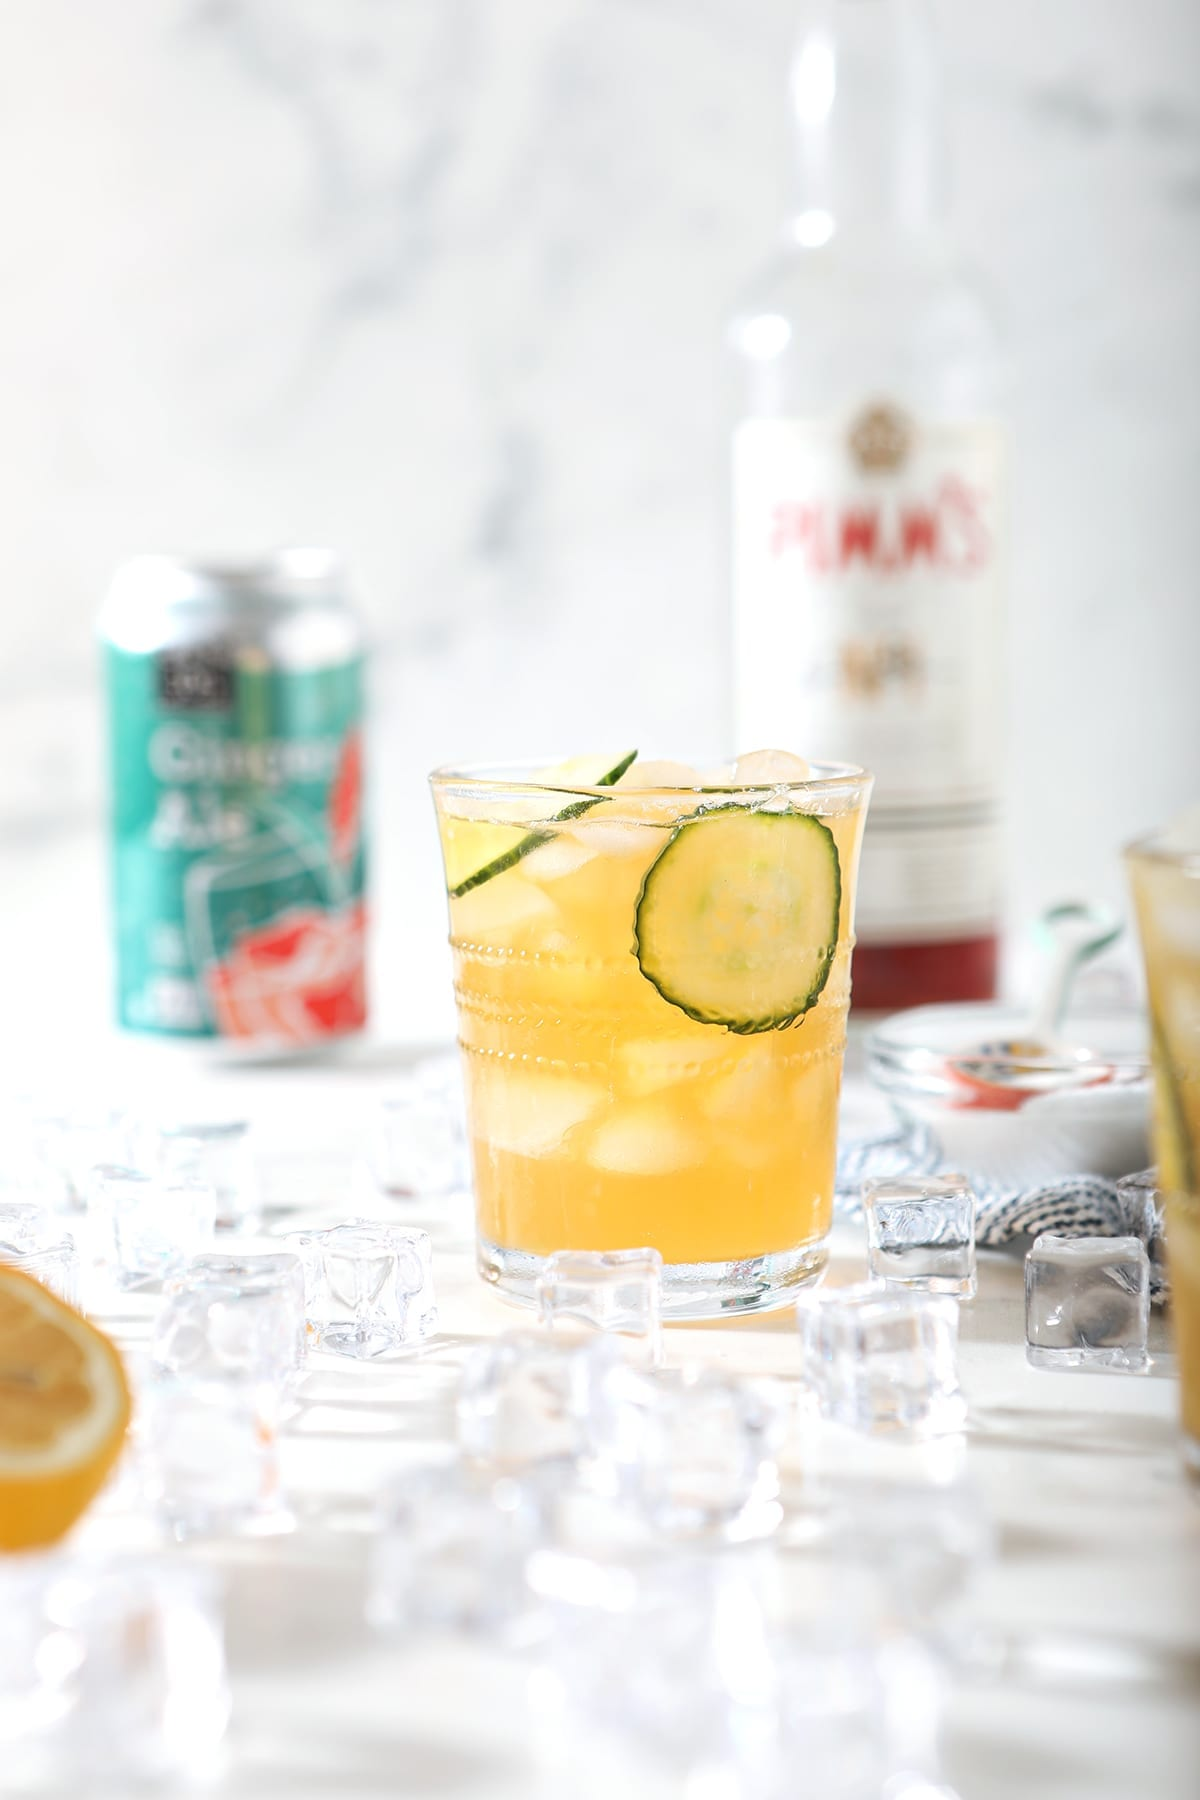 A Pimm's Cup sits in front of ingredients for the drink and ice